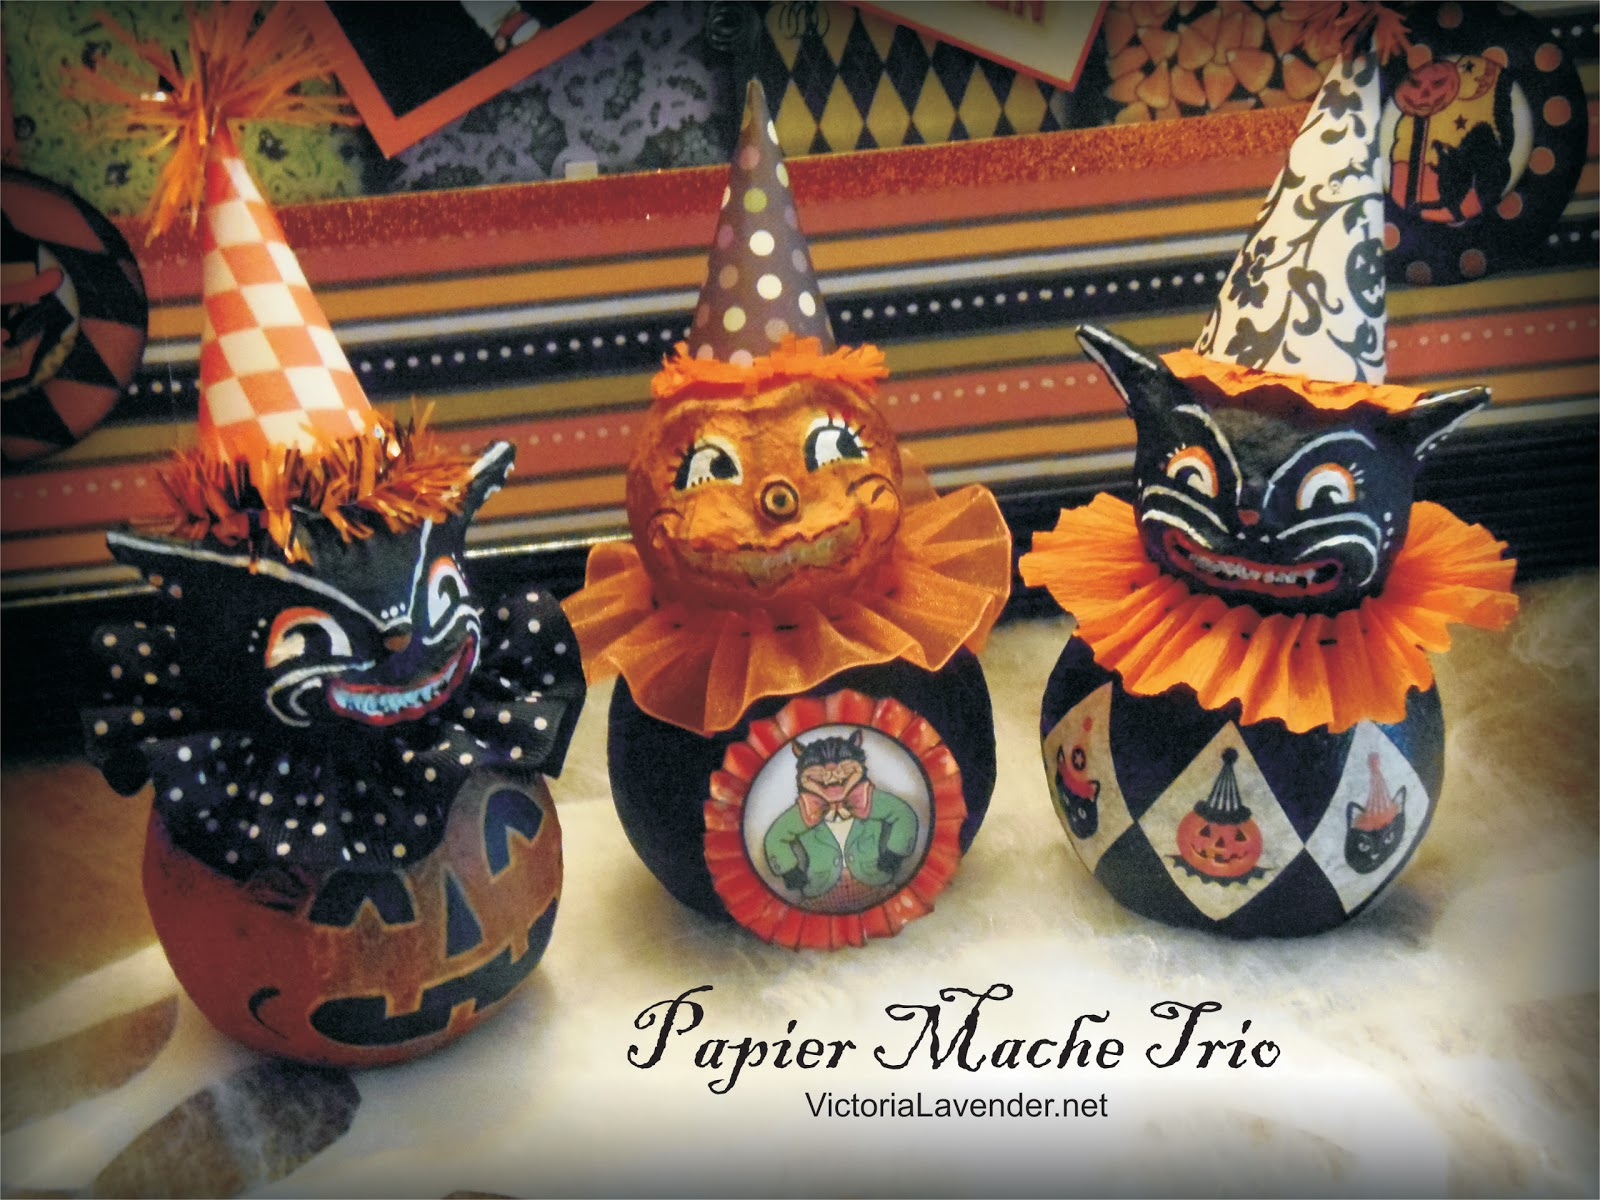 Victoria lavender halloween paper mache trio for Papier mache decorations